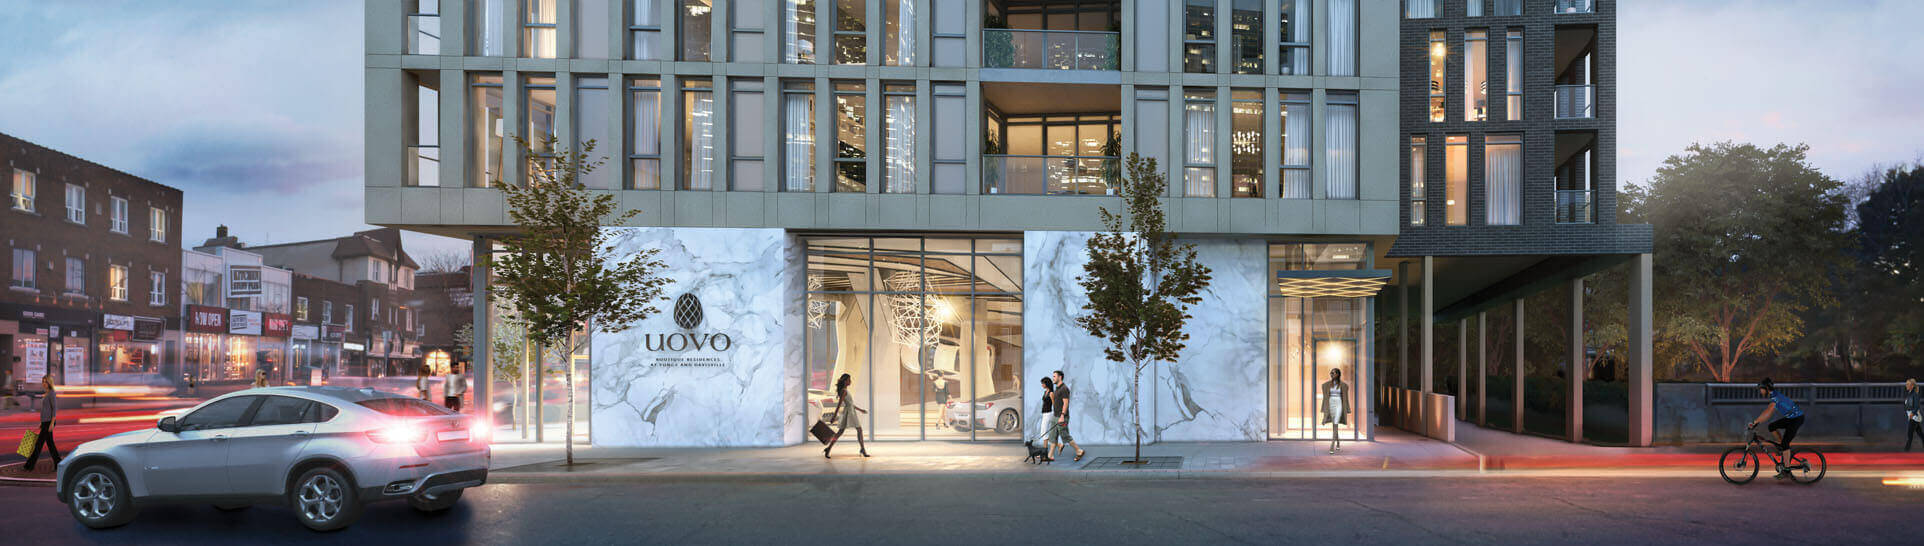 Uovo Condos Boutique Residences Rendering